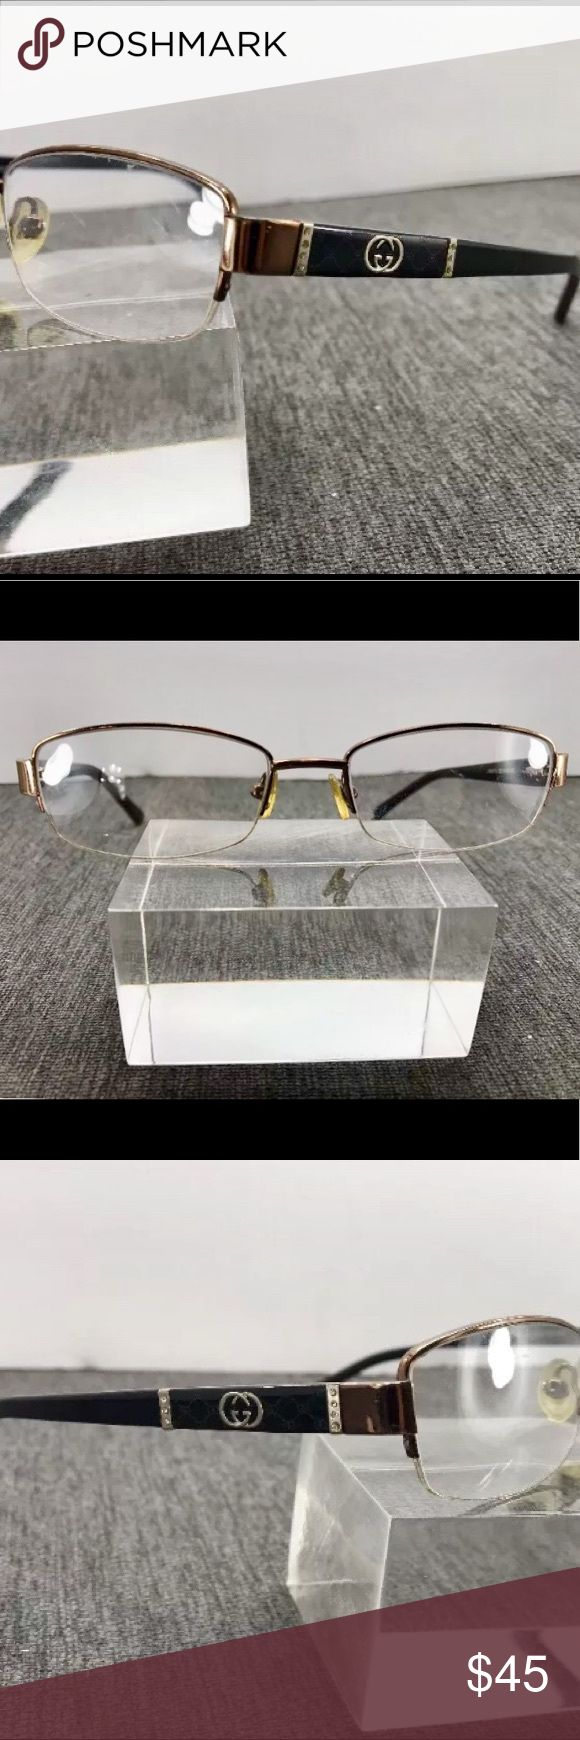 Gucci Eyeglass Frames Bronze and Black Gucci GG9670J Eyeglasses. Measurements: 52-16-135. Made in Italy. Great condition. Add your own prescription lenses. Gucci Accessories Glasses